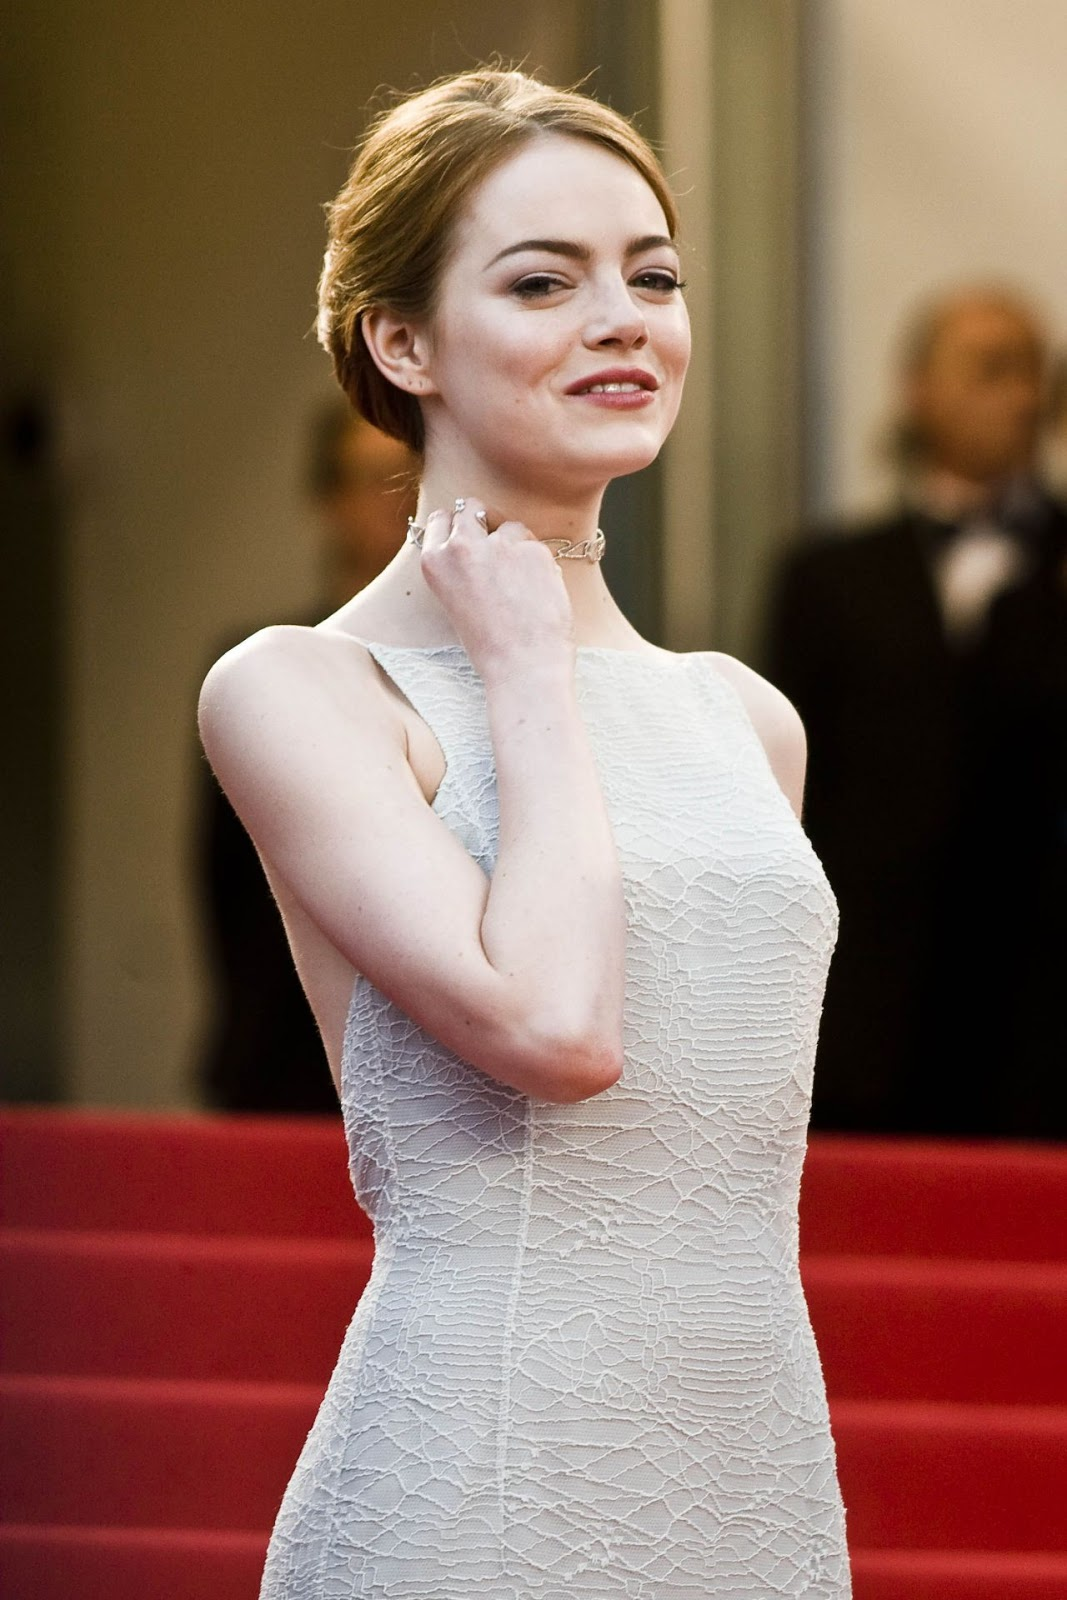 Full HQ Photos of Emma Stone Irrational Man Premiere 2015 Cannes Film Festival